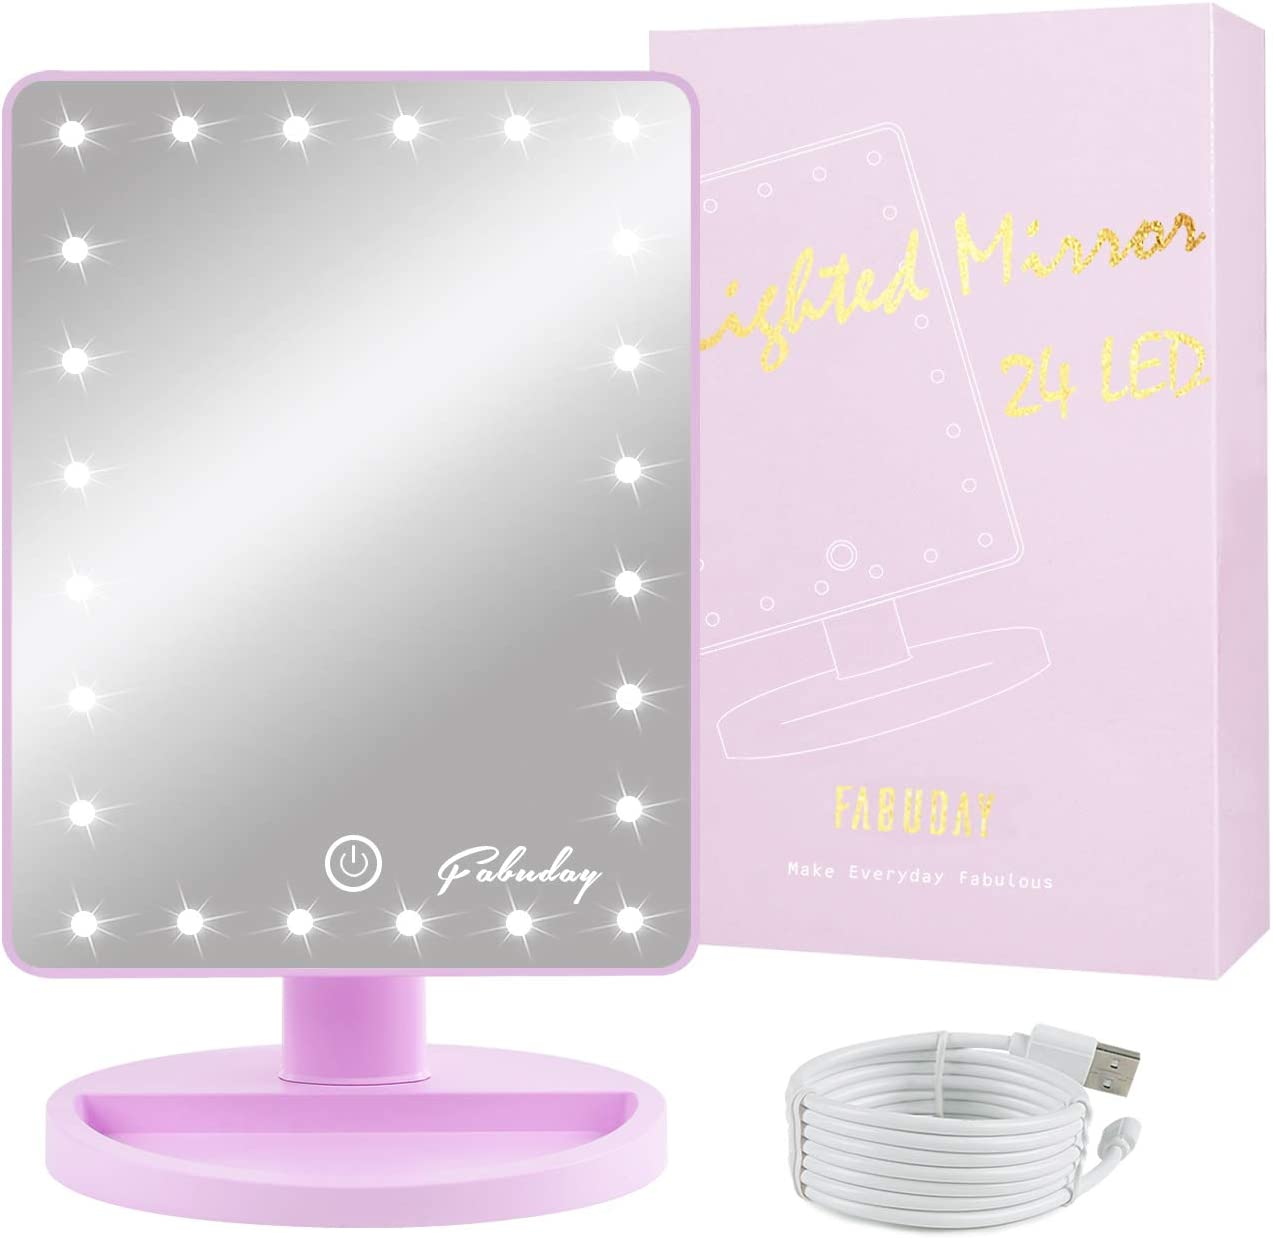 Fabuday LED Lighted Makeup Mirror 24 Led Vanity Cosmetic Mirror, Touch Screen Light Adjustable Diammable Dual Power Supply, 180° Rotation, Color Boxed, Purple